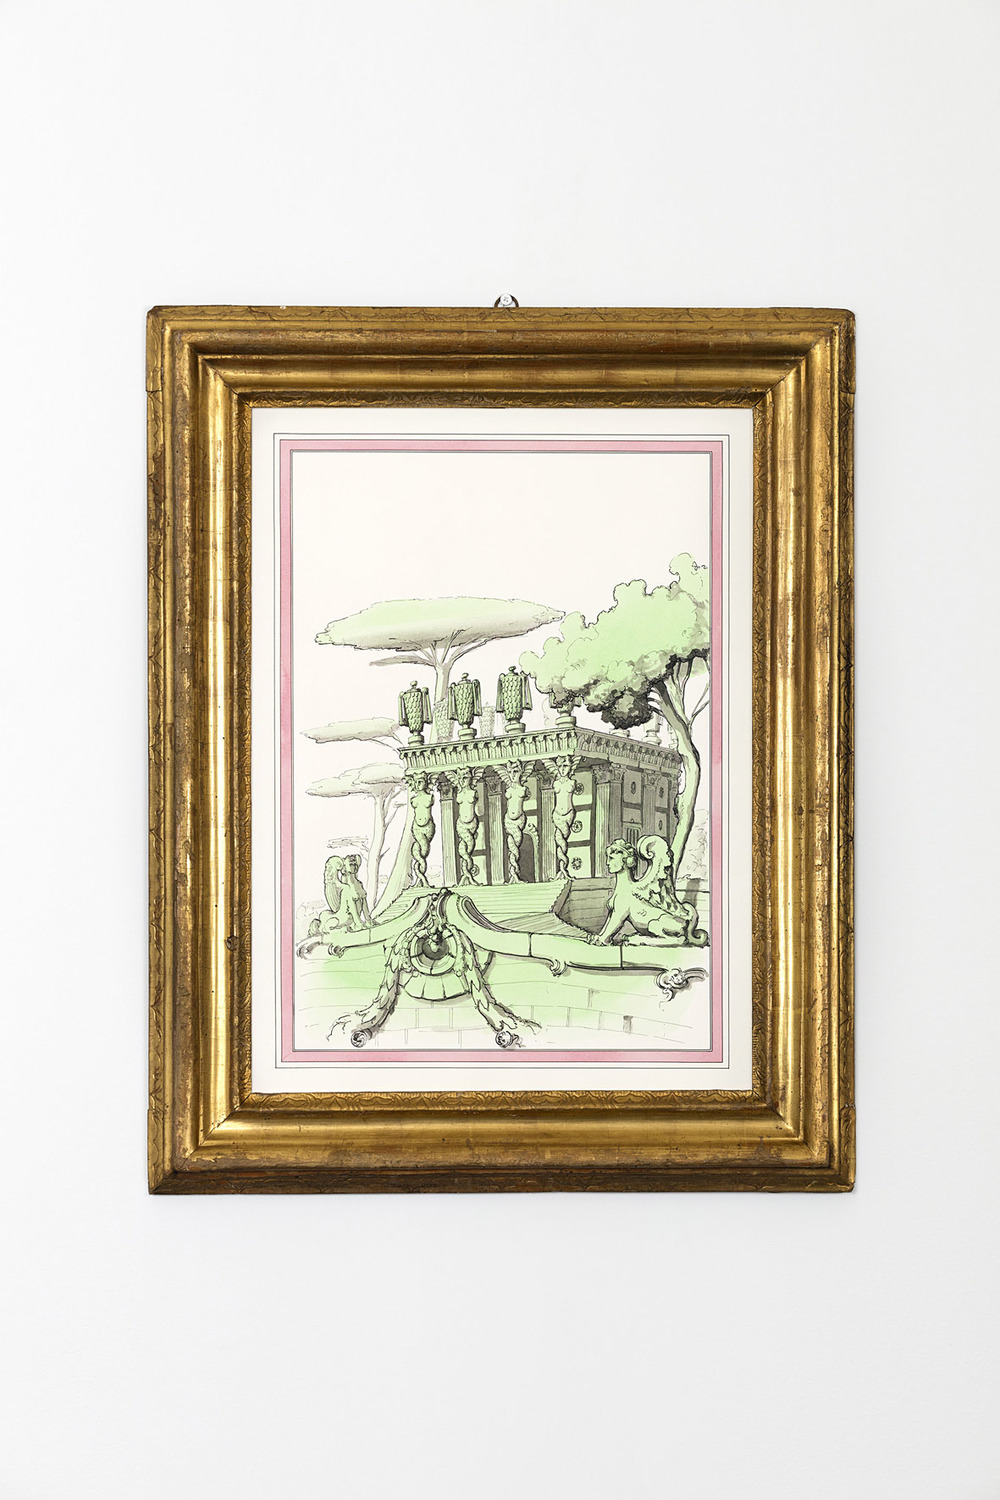 Mannerist Assemblage with fragments from an Alberti structure  - Temple of furies 2015 Ink and watercolour on paper in artist's frame 74.5 x 59.8 cm / 29.3 x 23.5 in